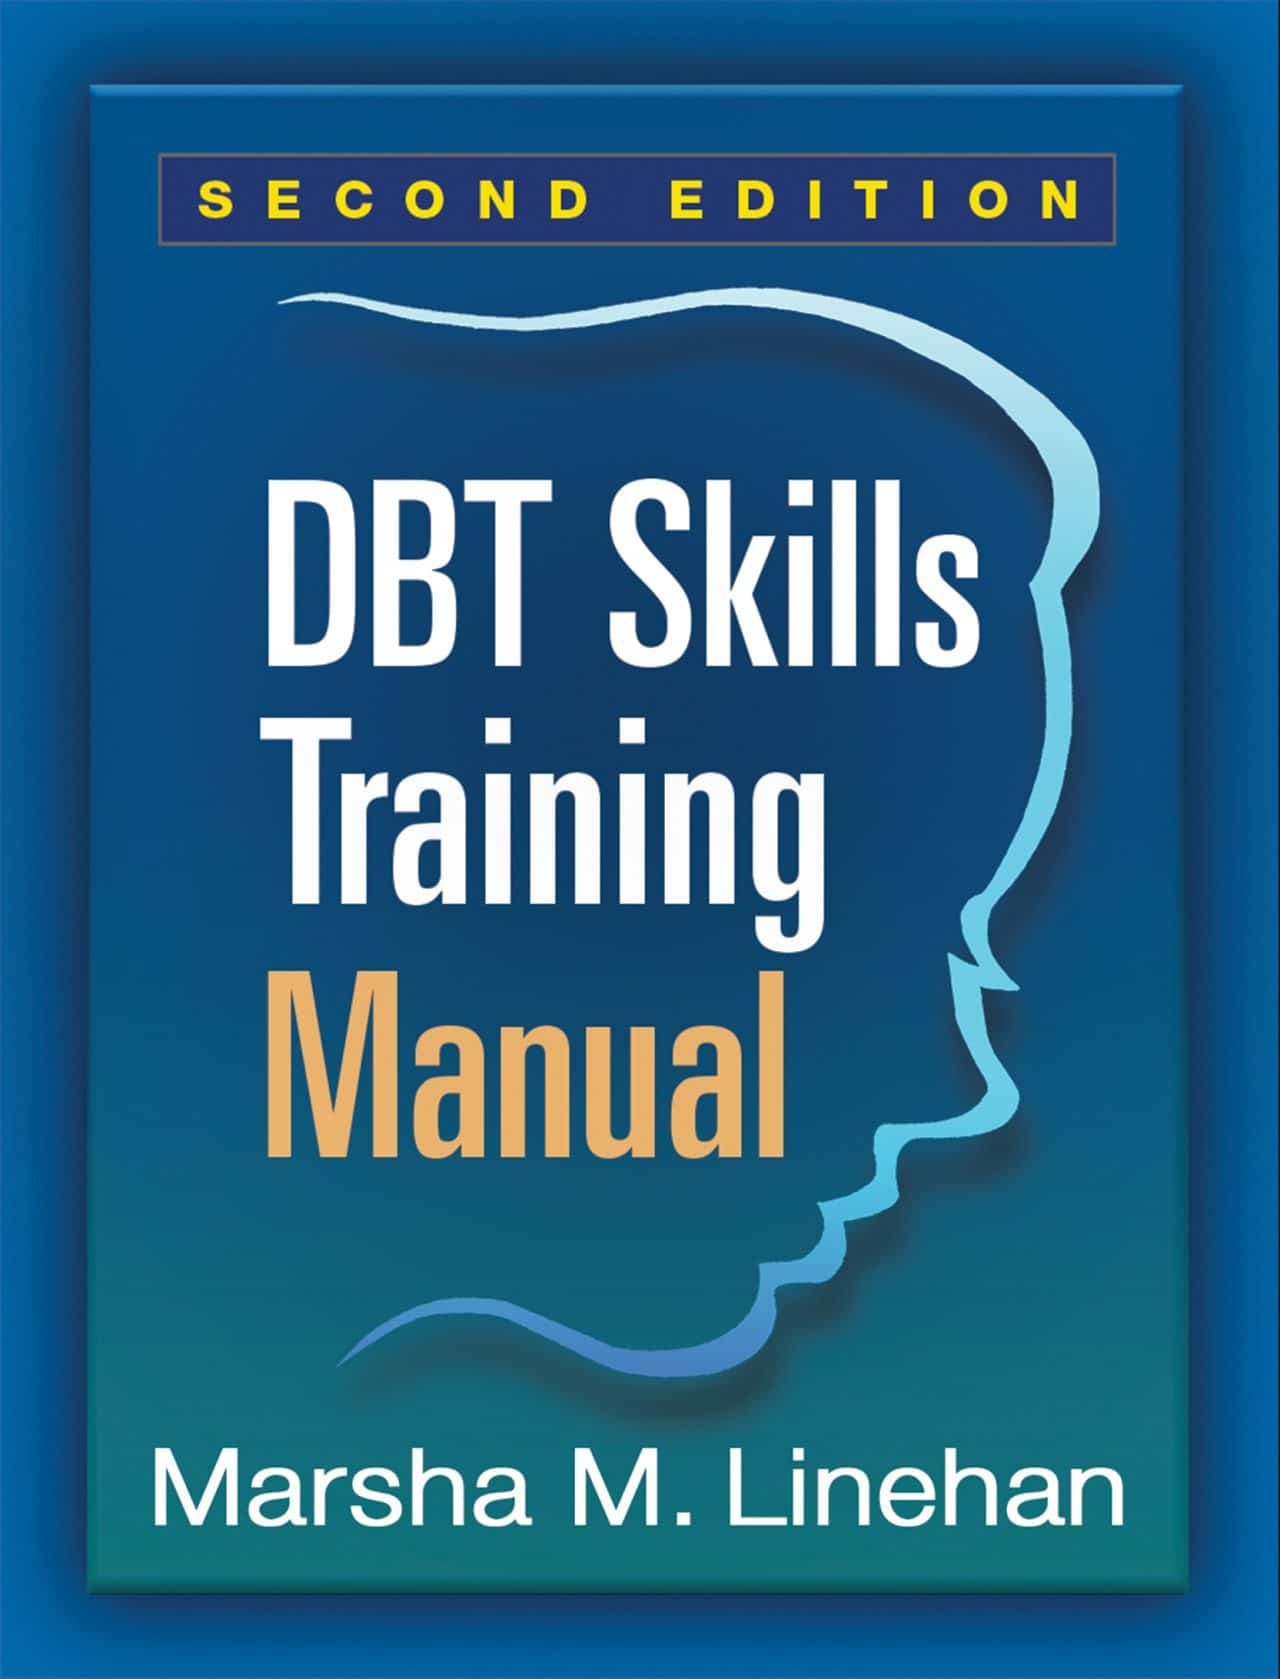 DBT Skills Training Manuale